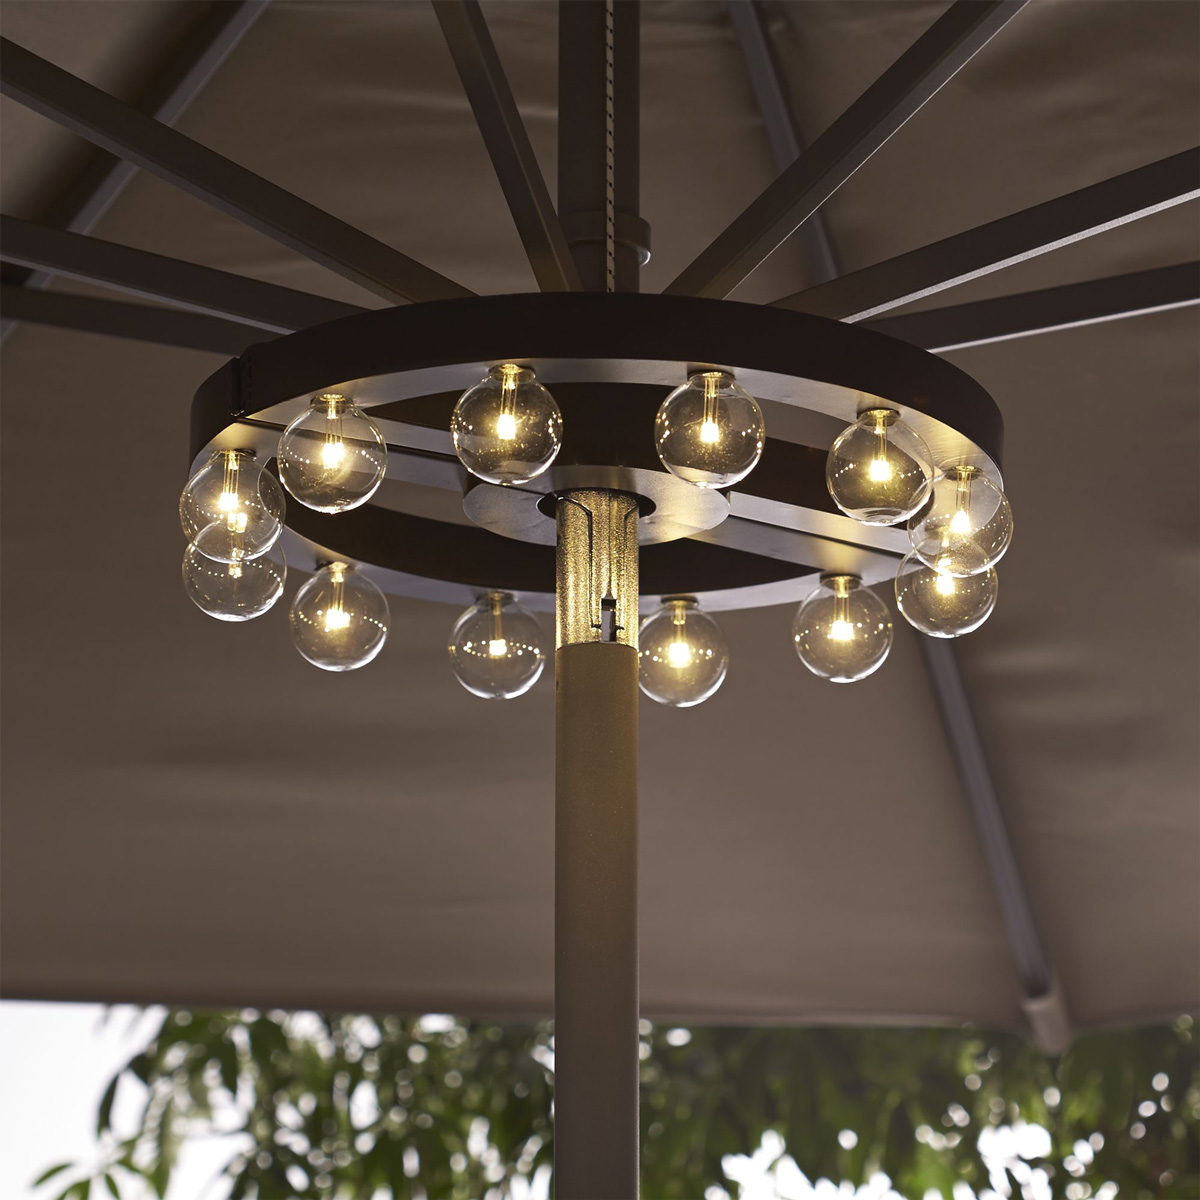 Patio Umbrella Marquee Lights